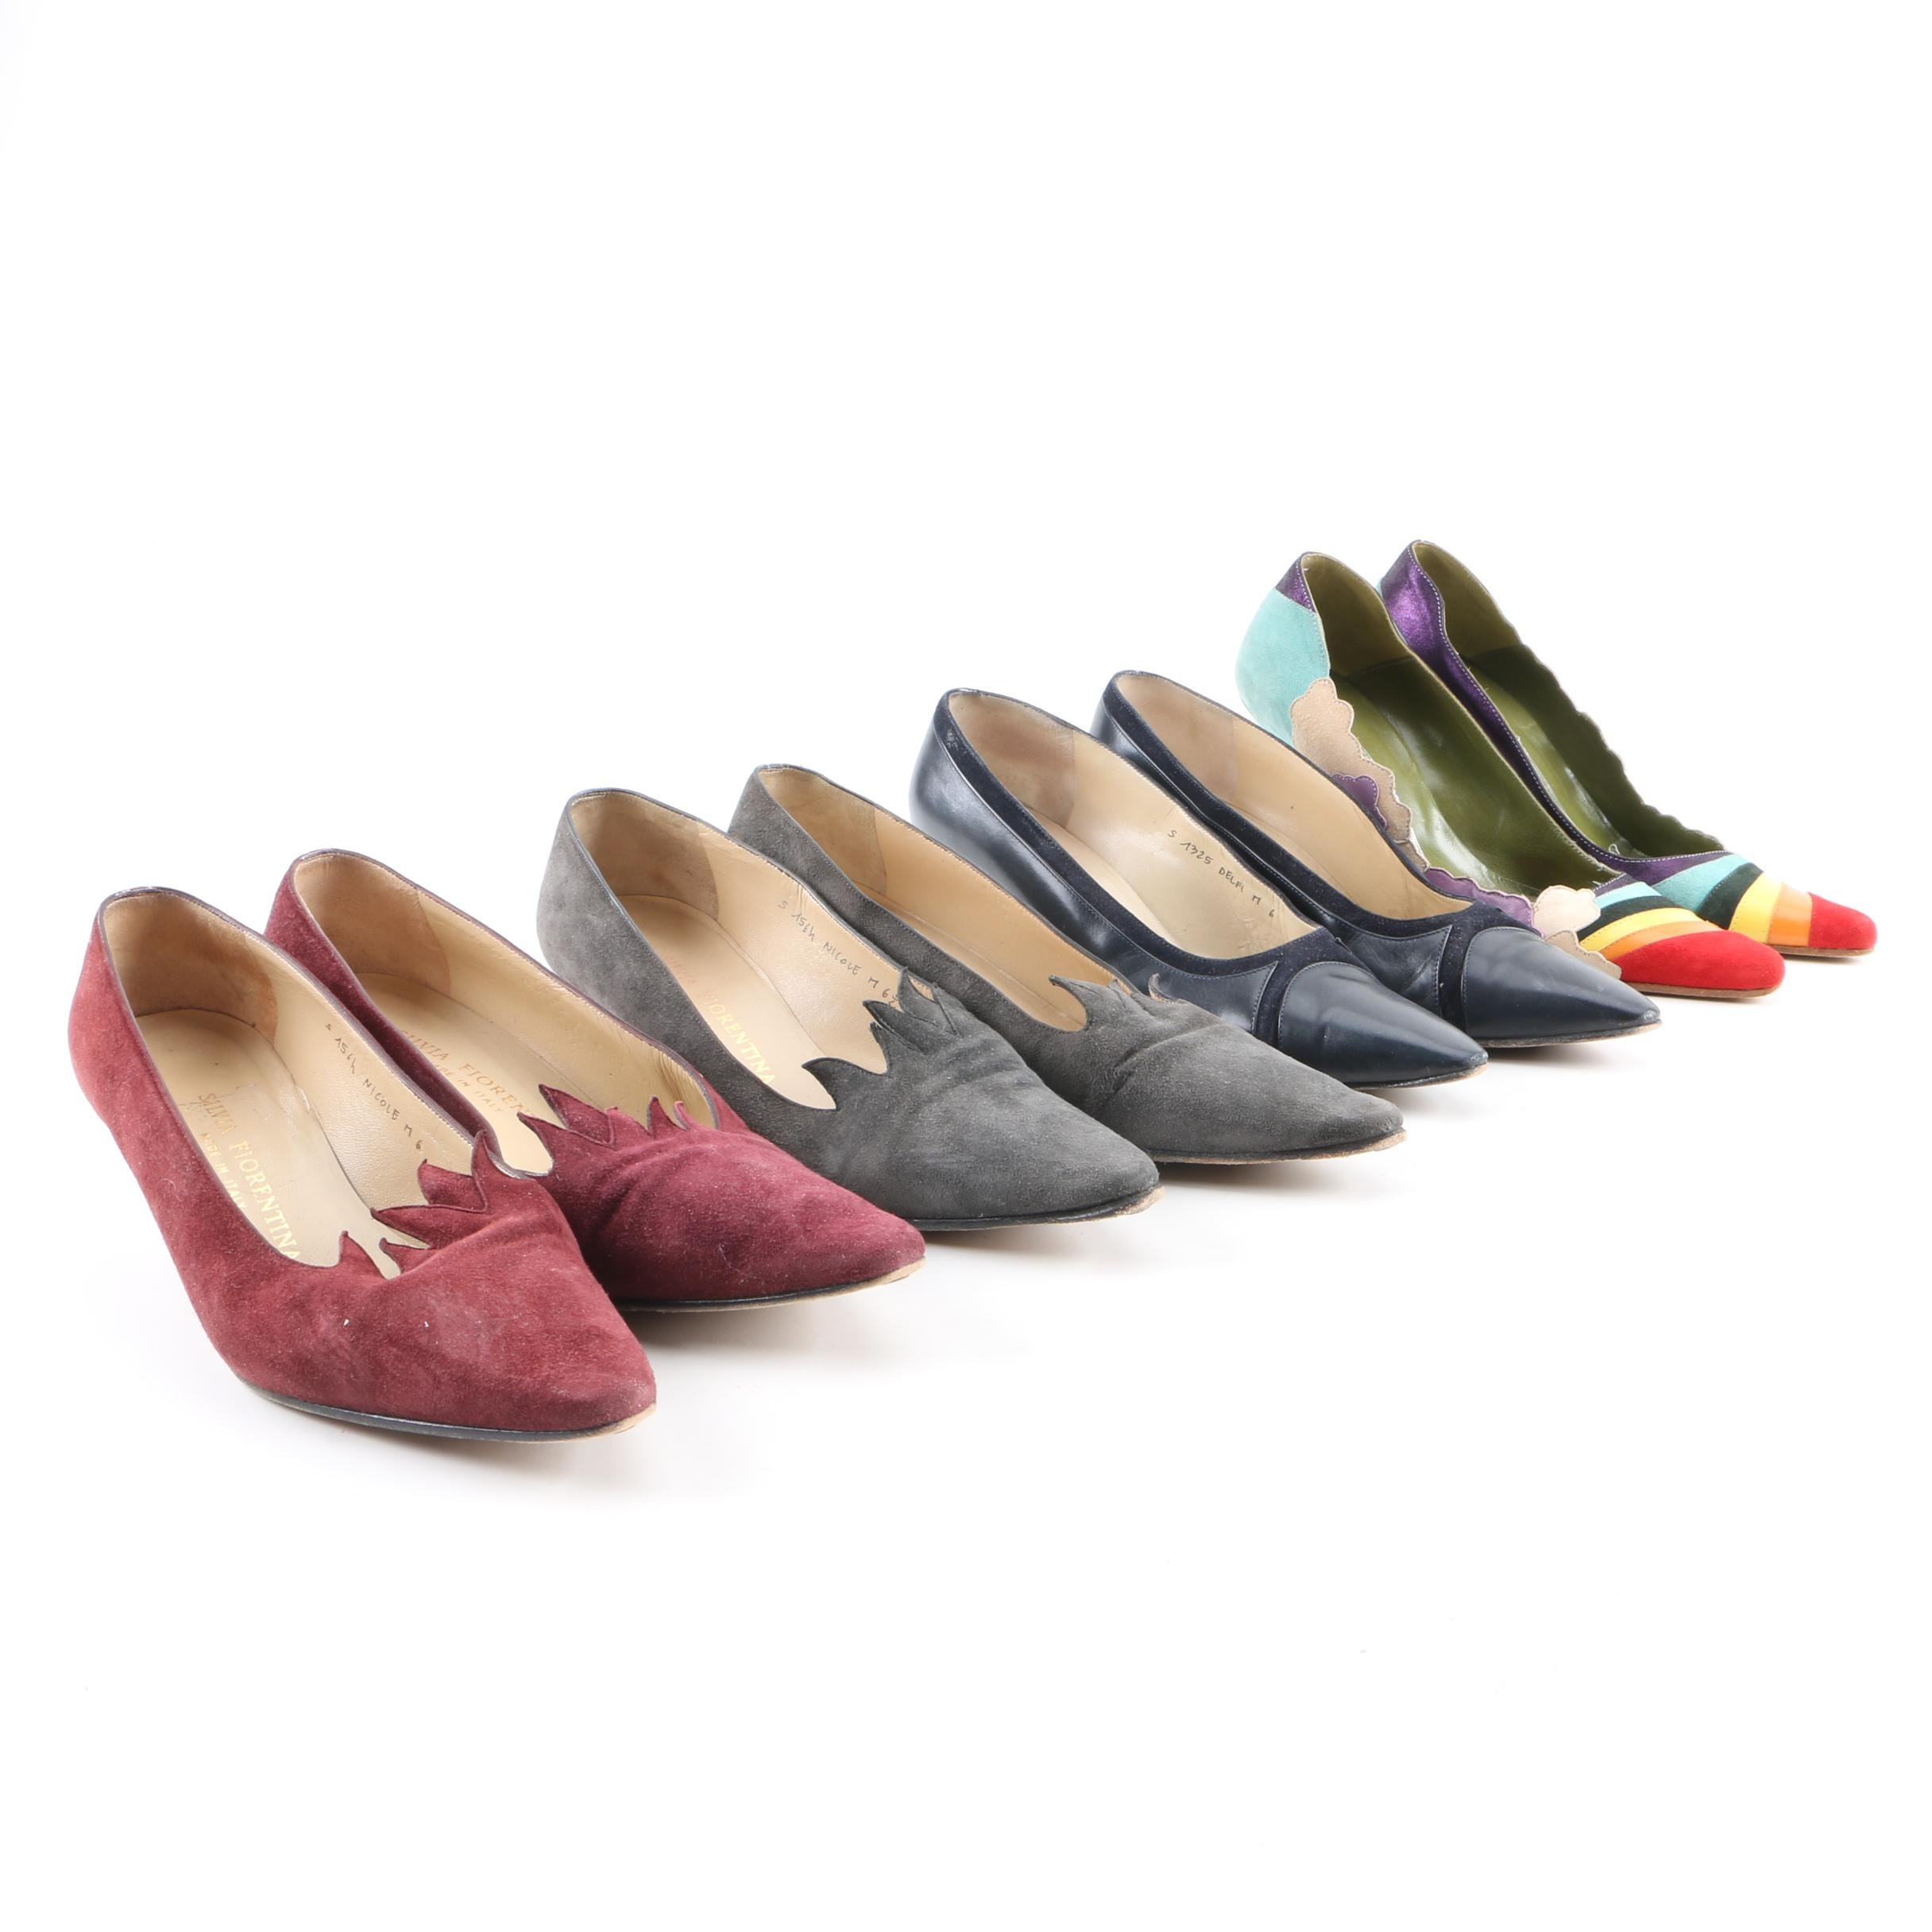 Women's Suede and Leather Heels Including Silvia Fiorentina and Ashley Dearborn